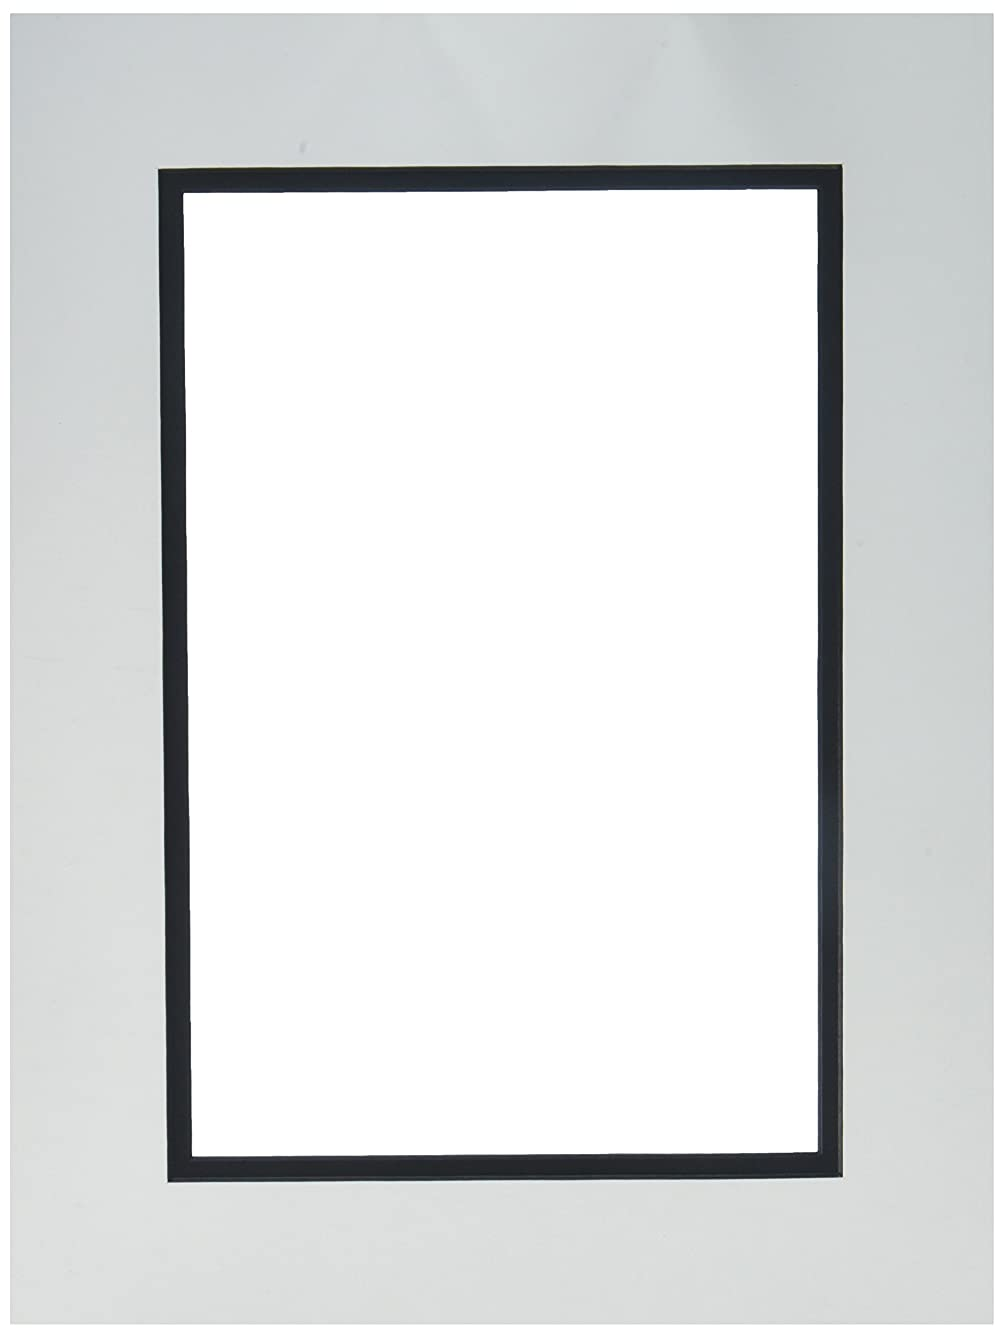 Accent Design Framing Mats ADF93607 ADF Mat Dbl 12x16/8x12 Core White/Black